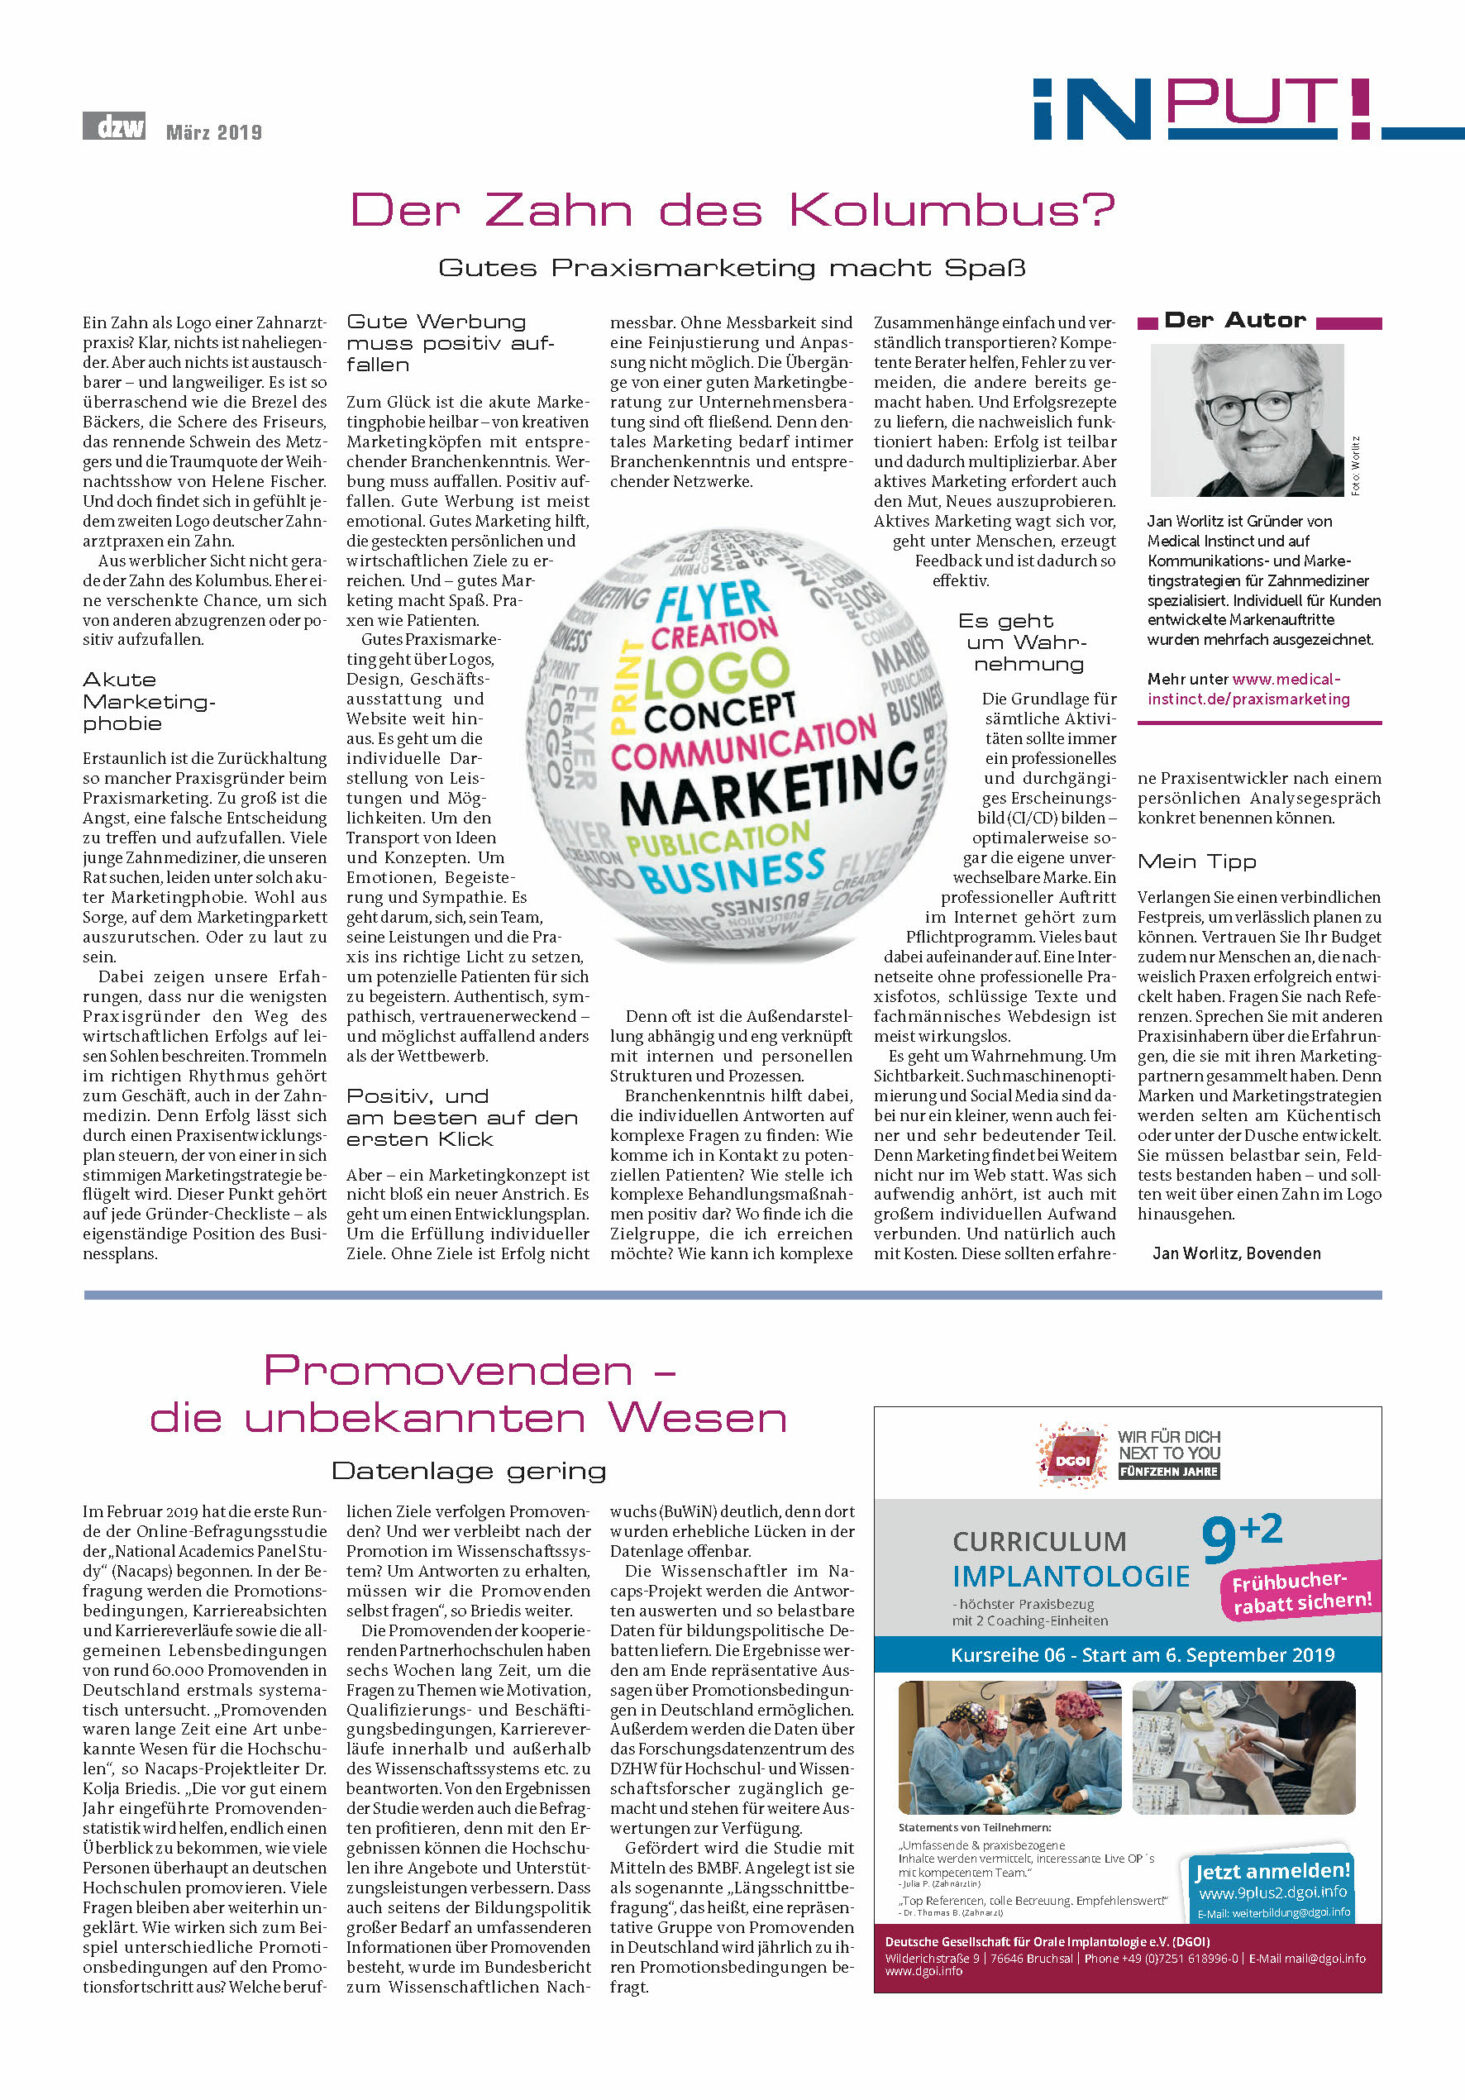 Medical Instinct® Artikel DZW Jan Worlitz - Praxismarketing